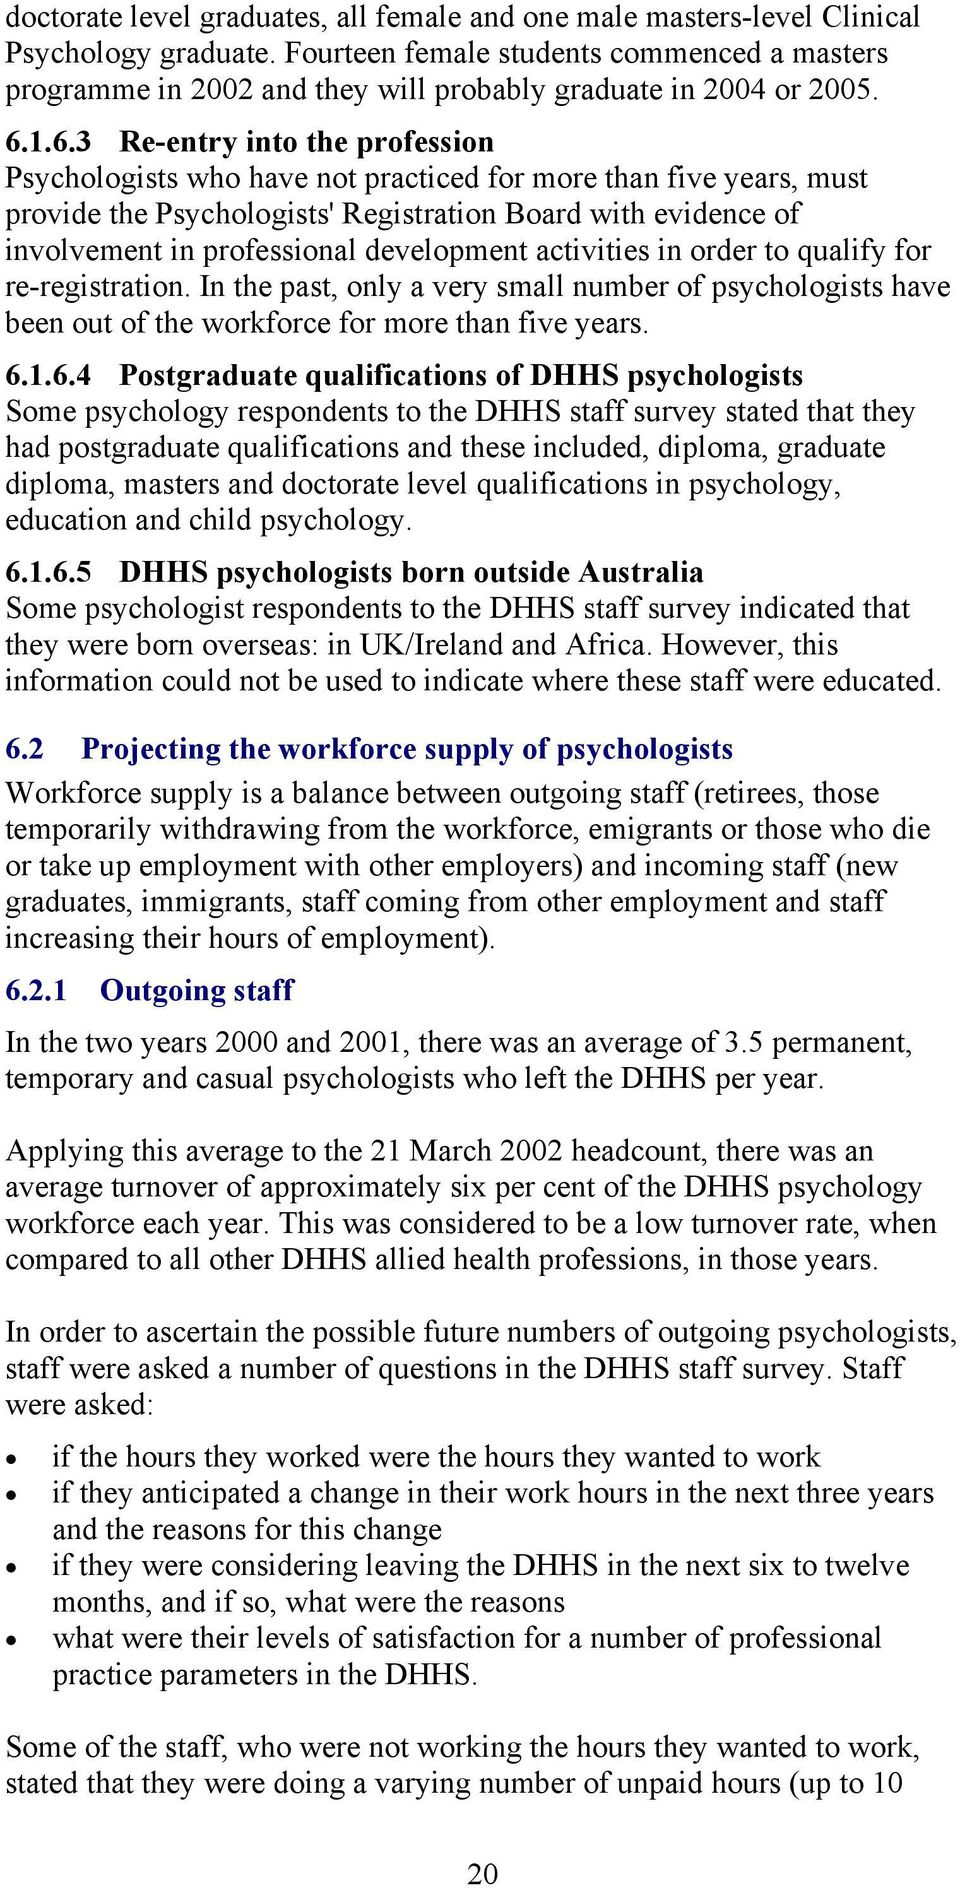 1.6.3 Re-entry into the profession Psychologists who have not practiced for more than five years, must provide the Psychologists' Registration Board with evidence of involvement in professional